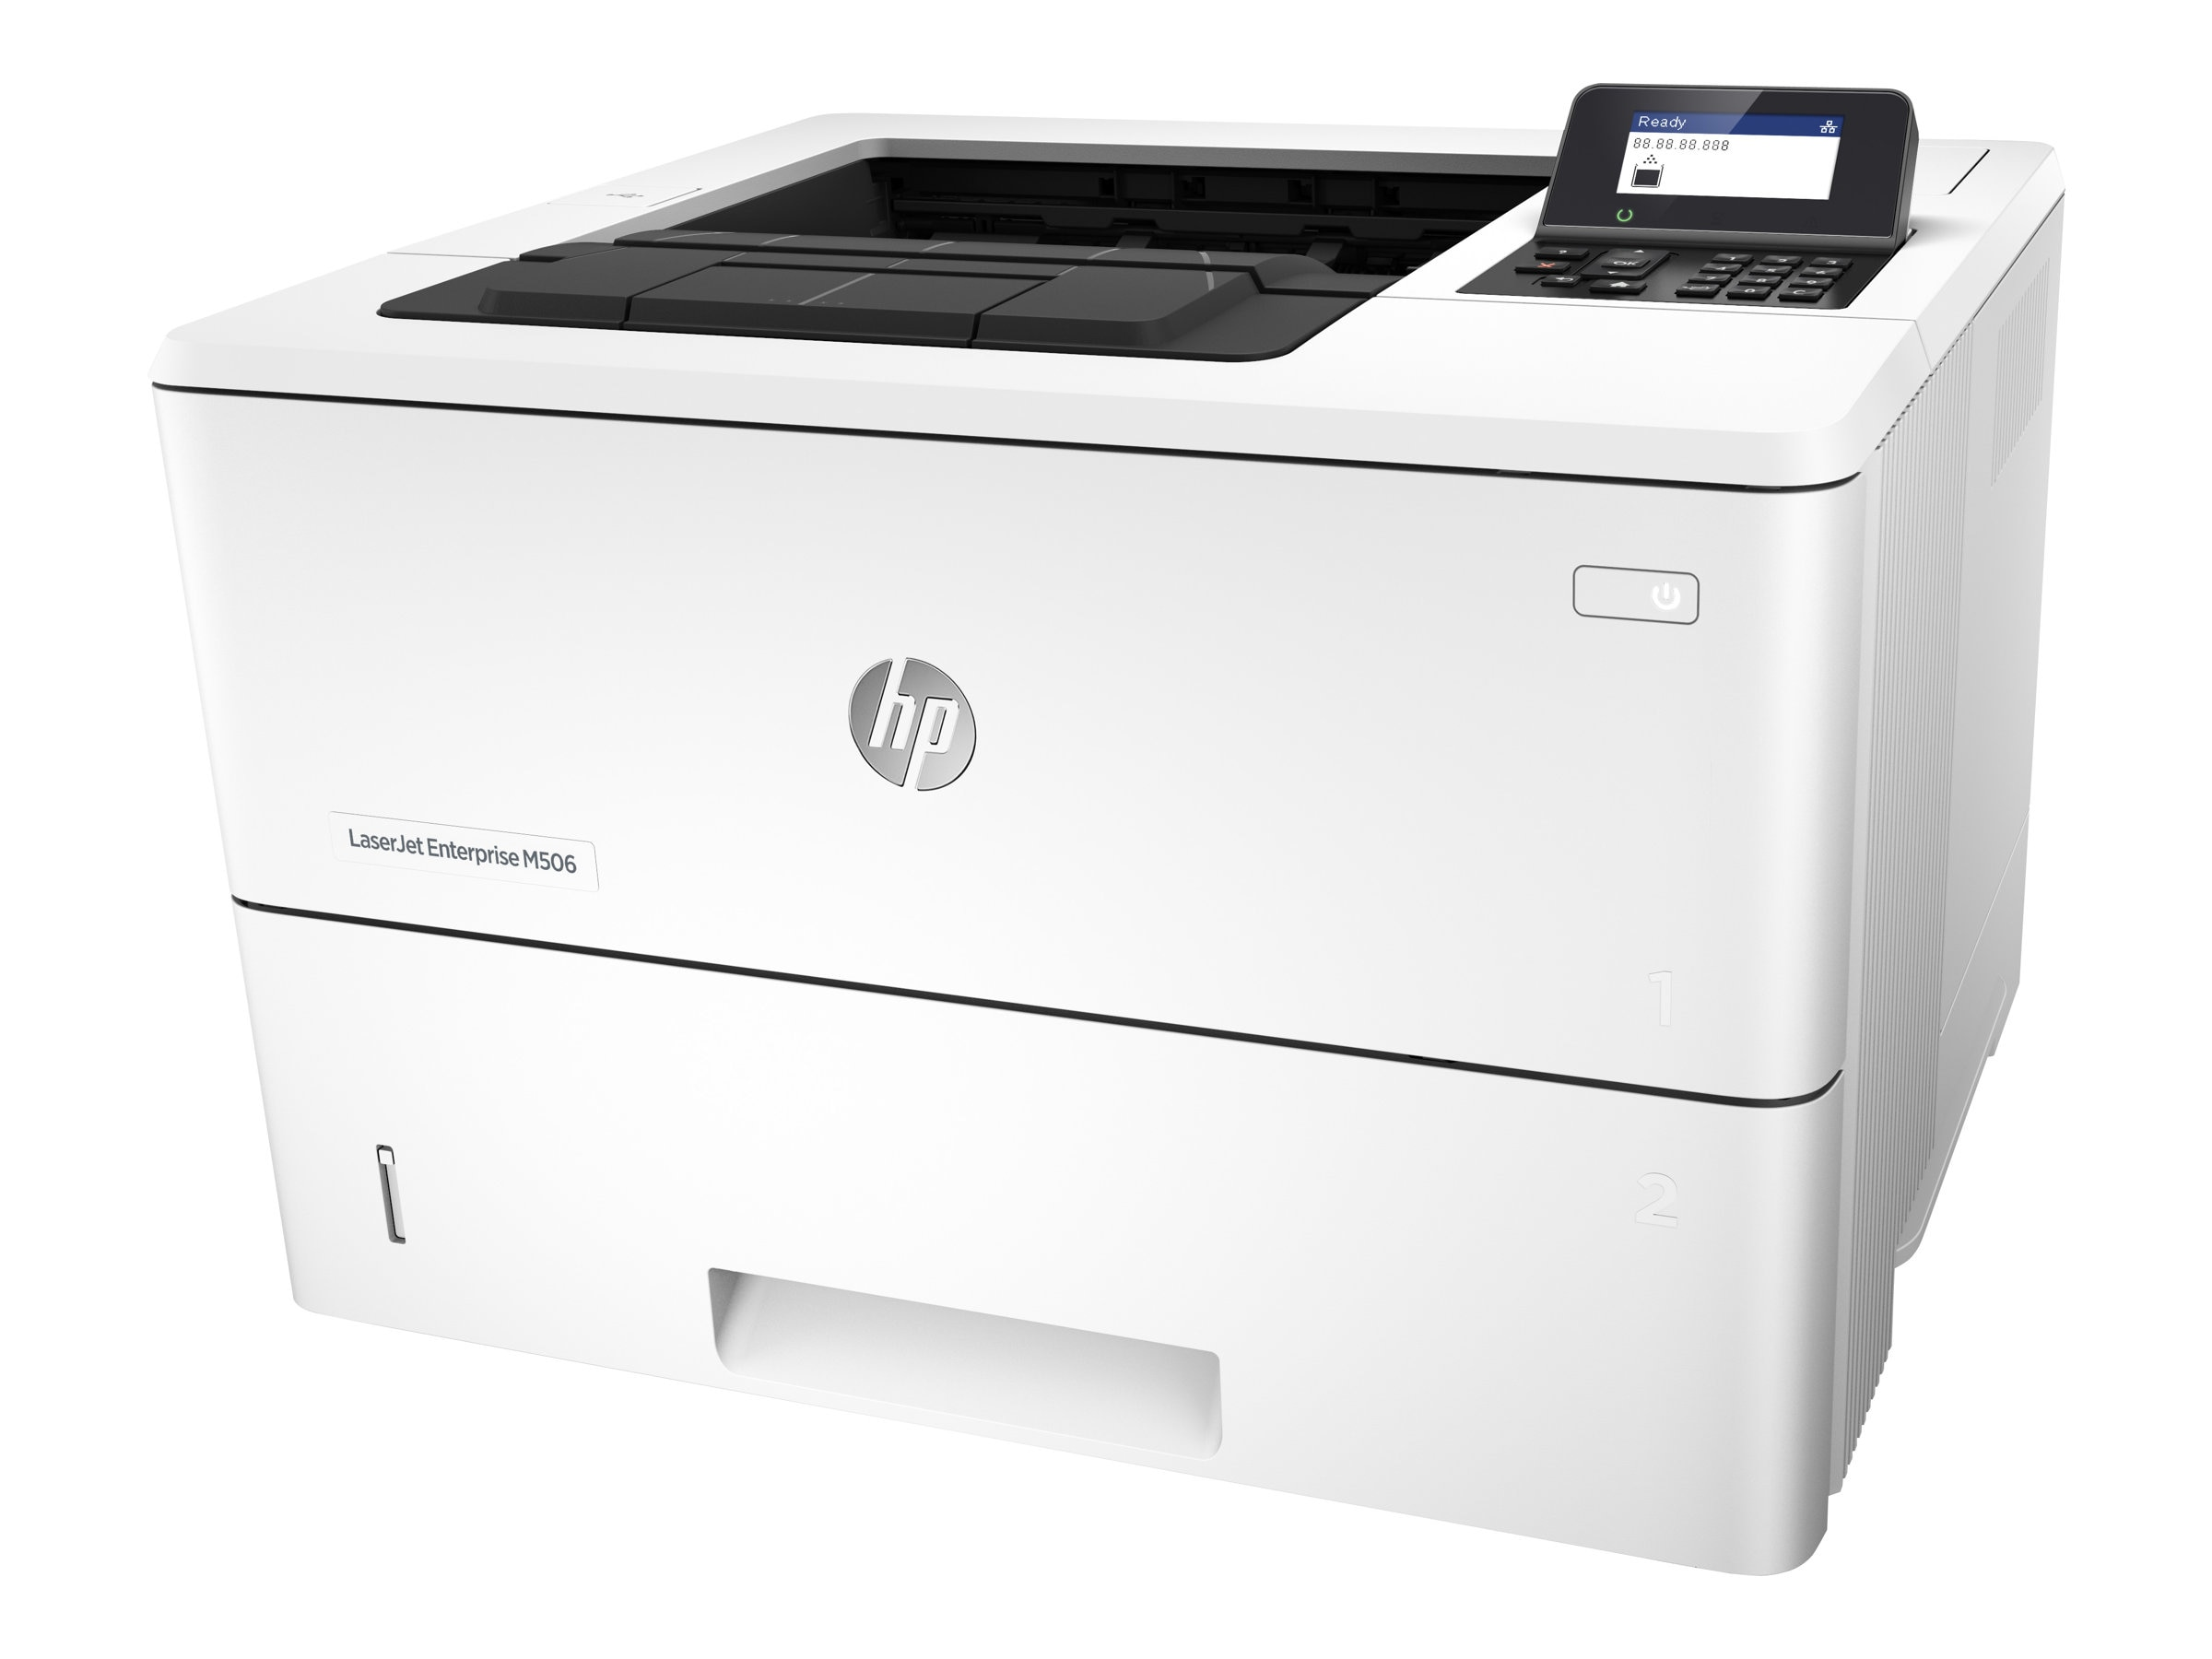 HP LaserJet Enterprise M506dn Printer - 220V